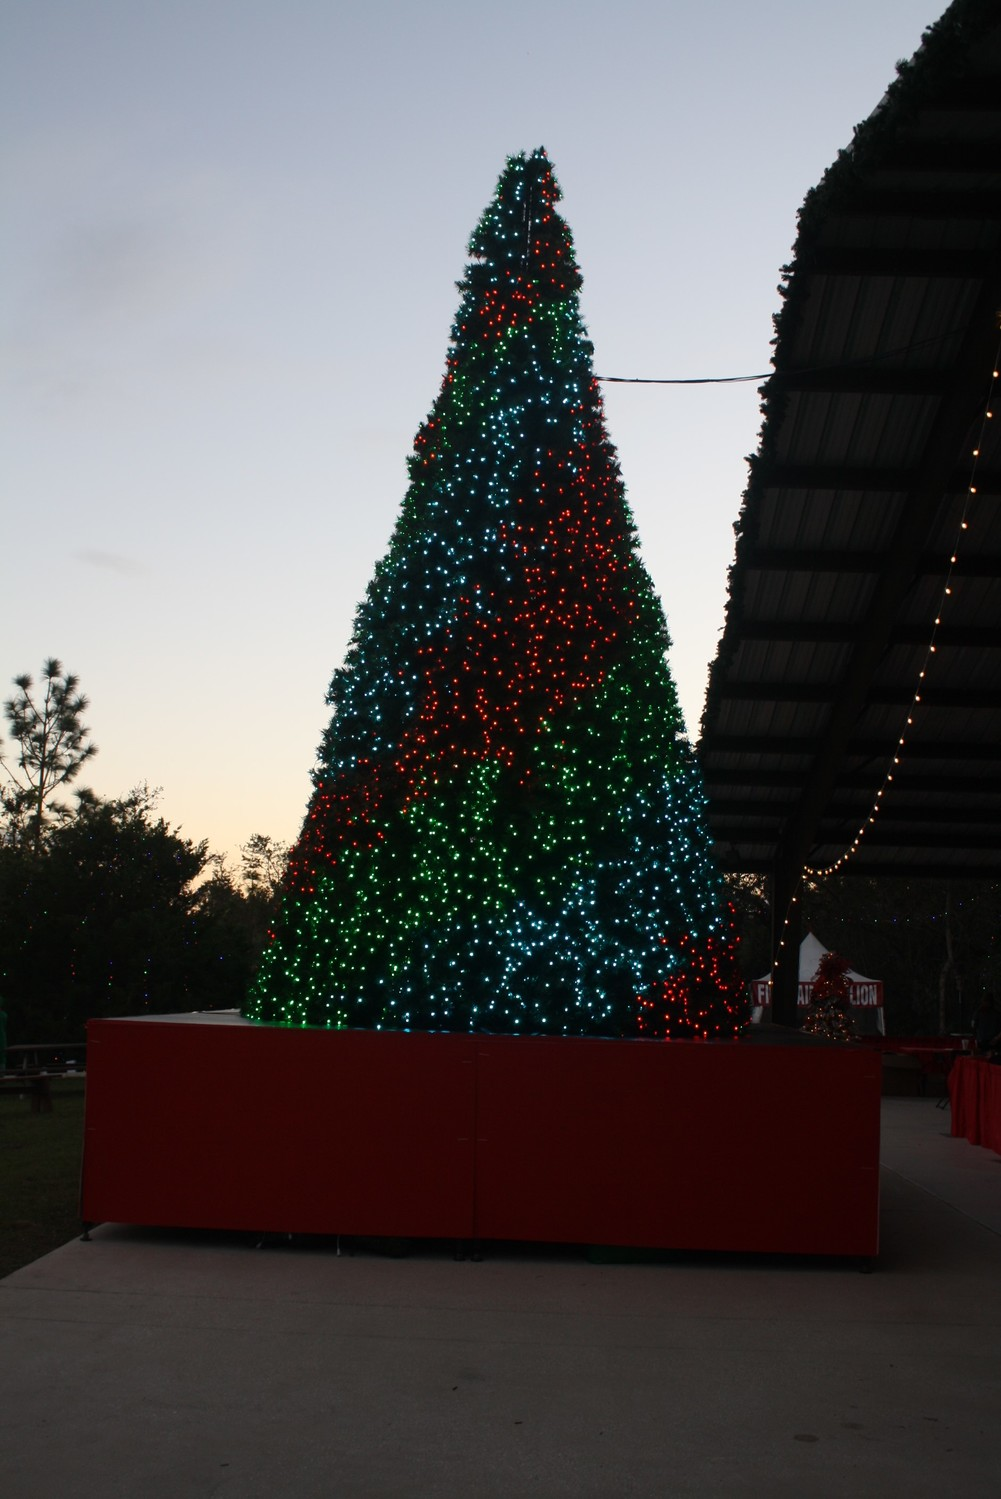 The Village features a Christmas tree that performs every hour.